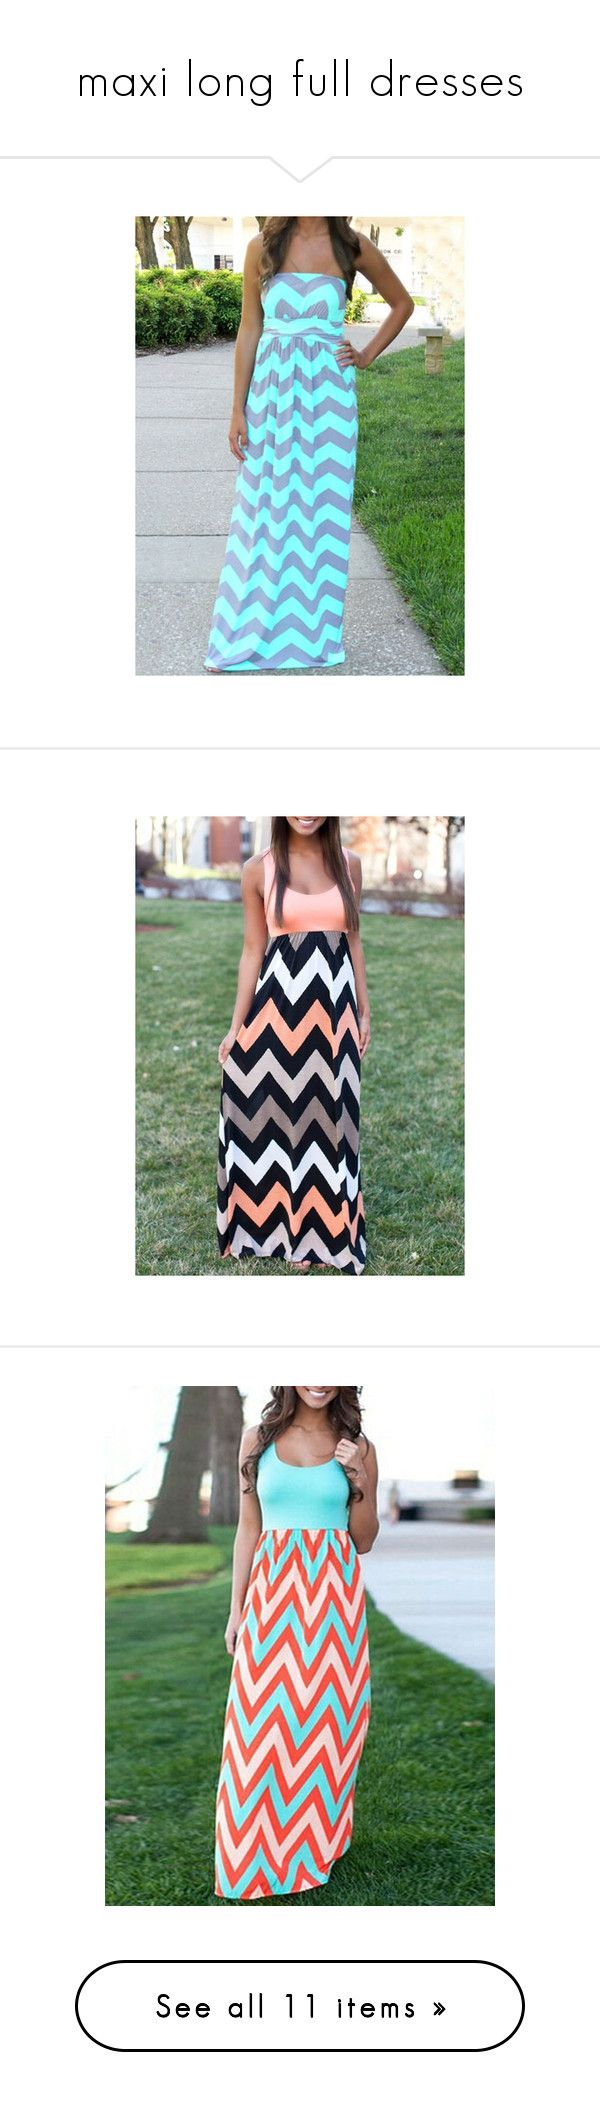 """""""maxi long full dresses"""" by alexuspeacock1 ❤ liked on Polyvore featuring dresses, multi color, chevron maxi dress, boho dresses, striped maxi dresses, print maxi dress, beach dresses, tank maxi dresses, multi color maxi dress and chevron print dress"""